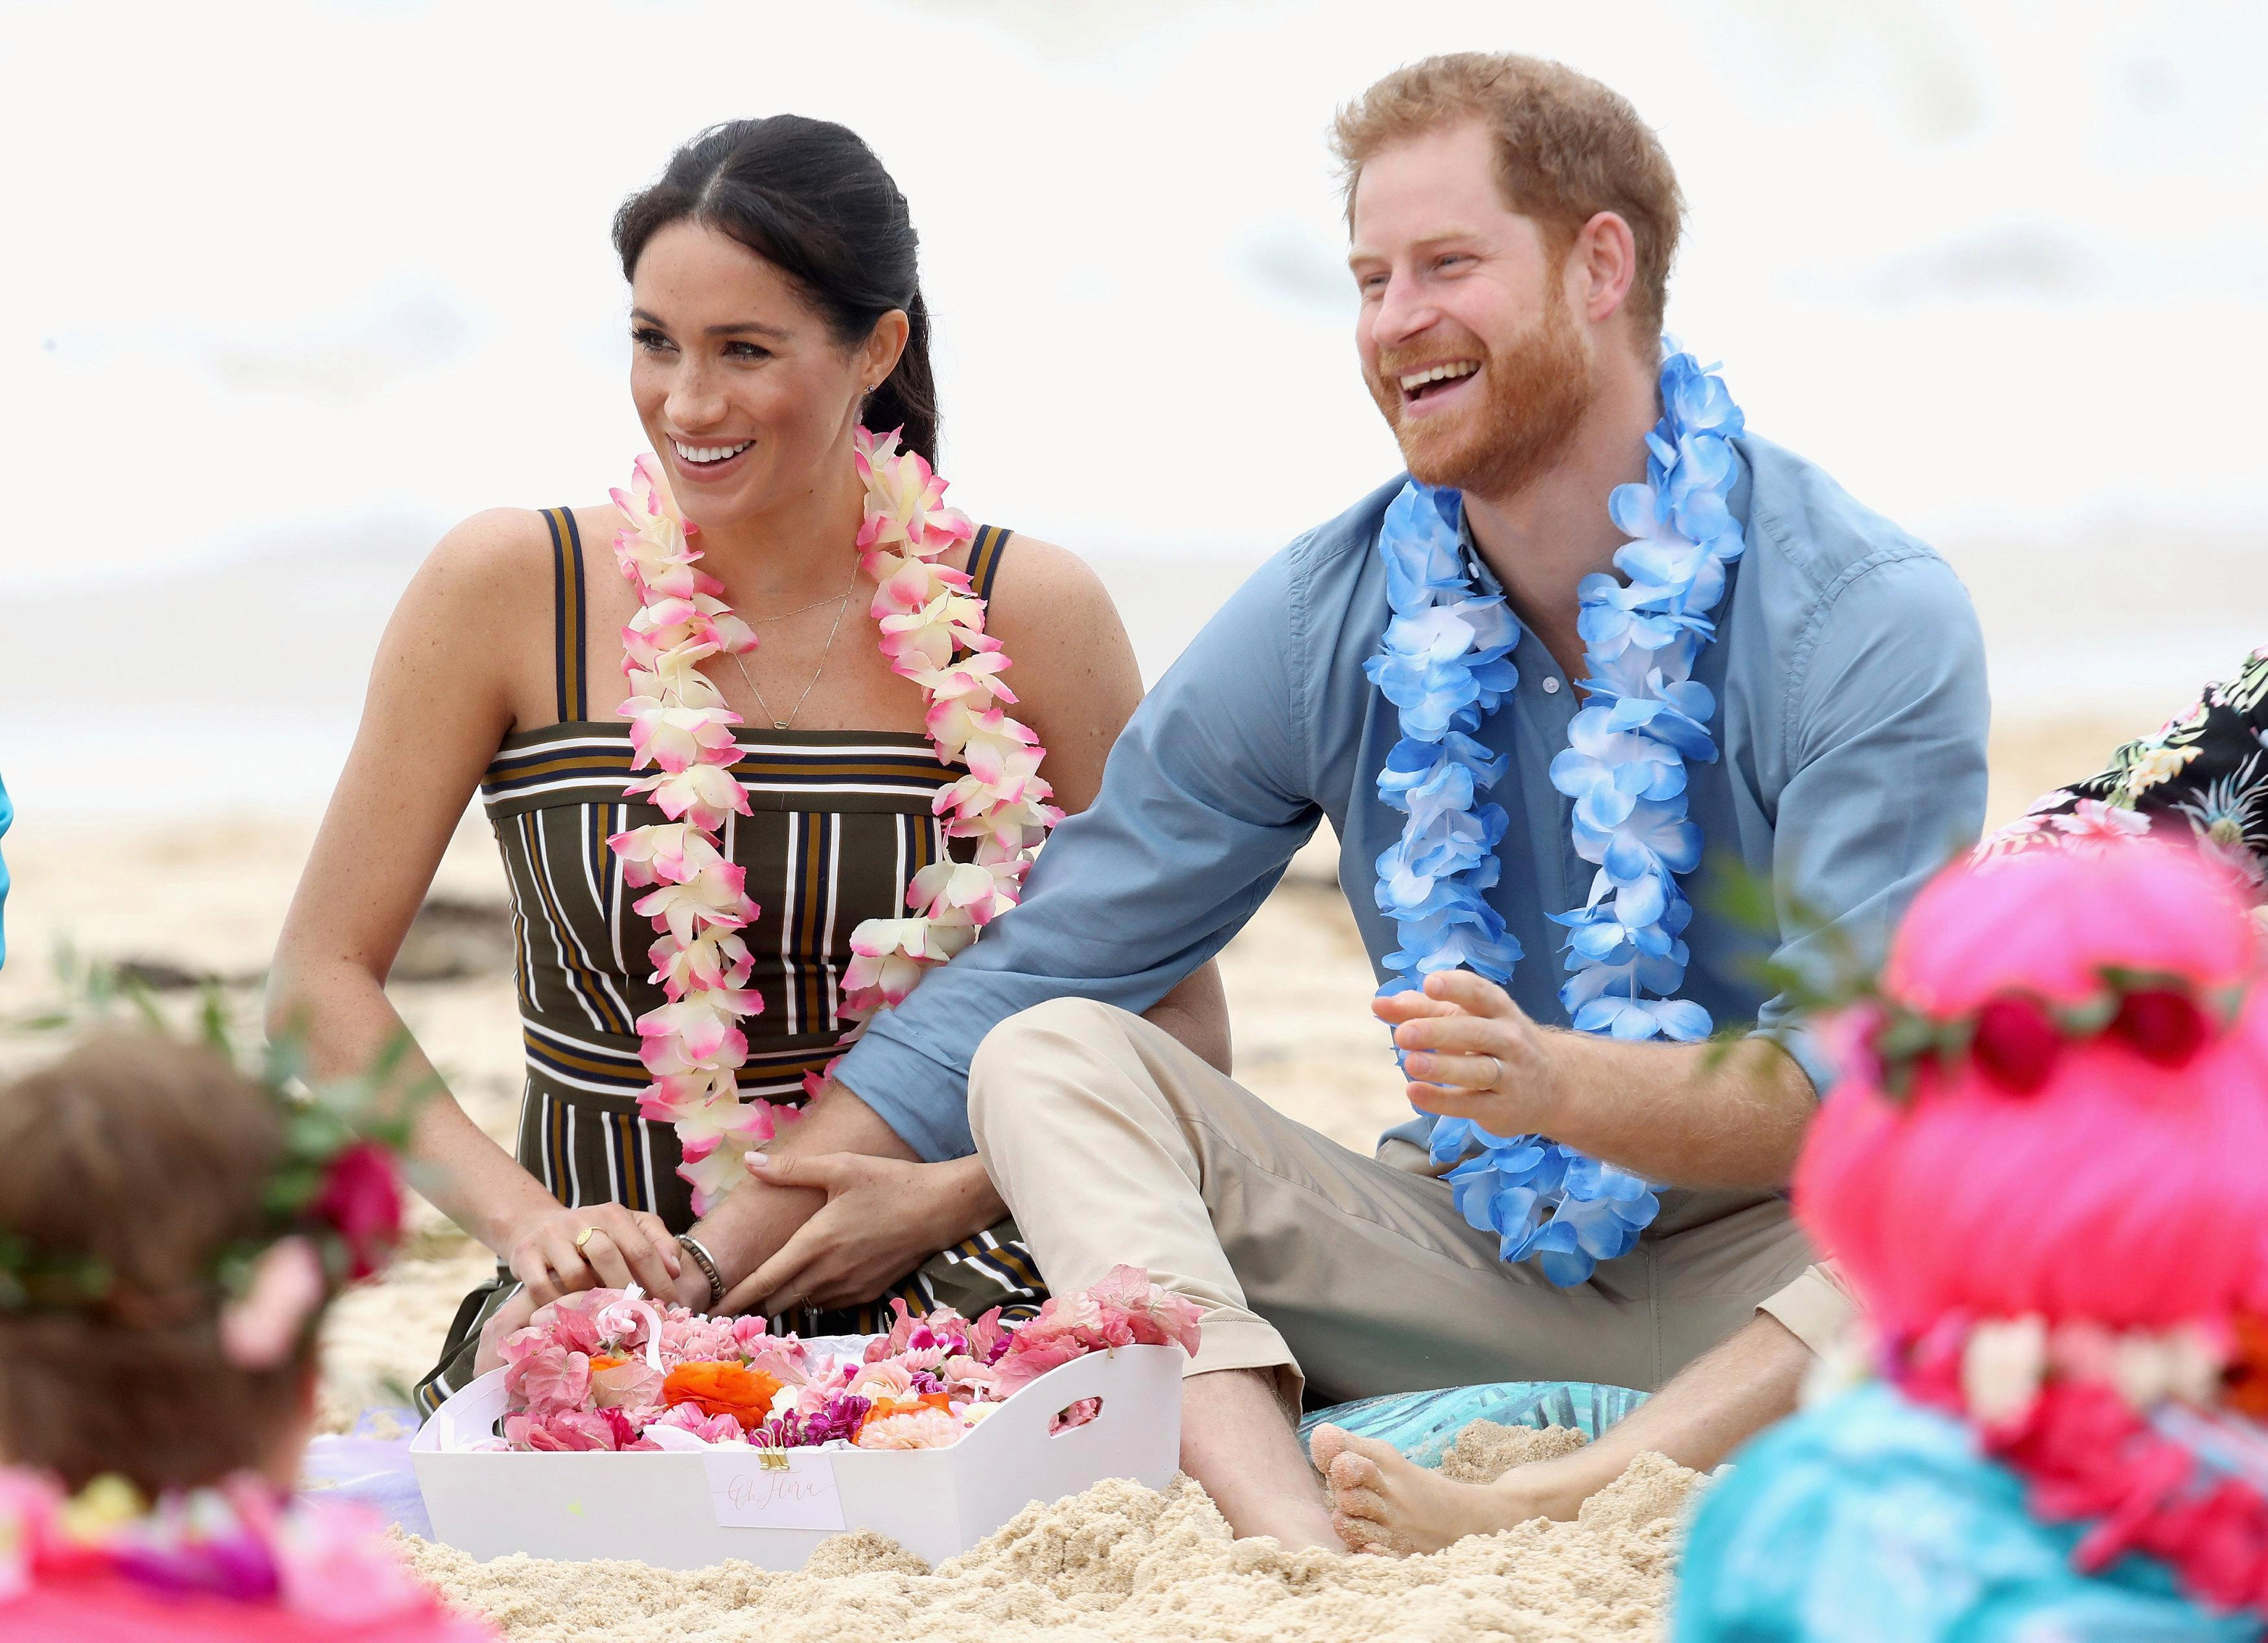 Meghan Markle is 'breaking rules too quickly' in quest to bring the royal family into the 21st century, claims royal biographer Claudia Joseph